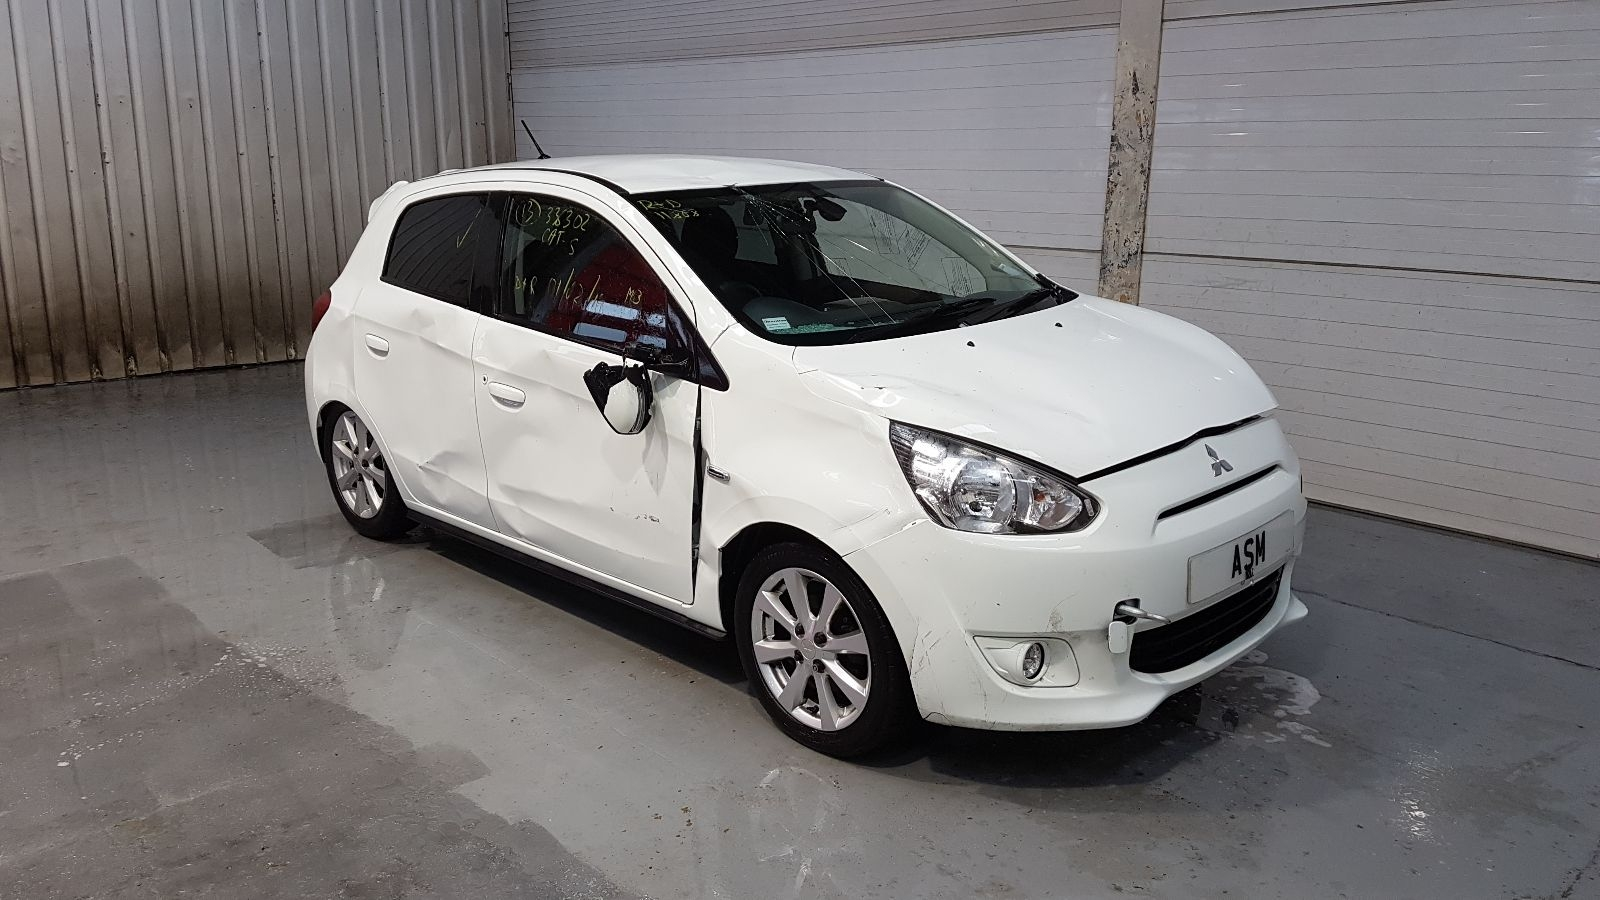 Image for a 2016 Mitsubishi Mirage 1.2 Petrol 3A92 Engine